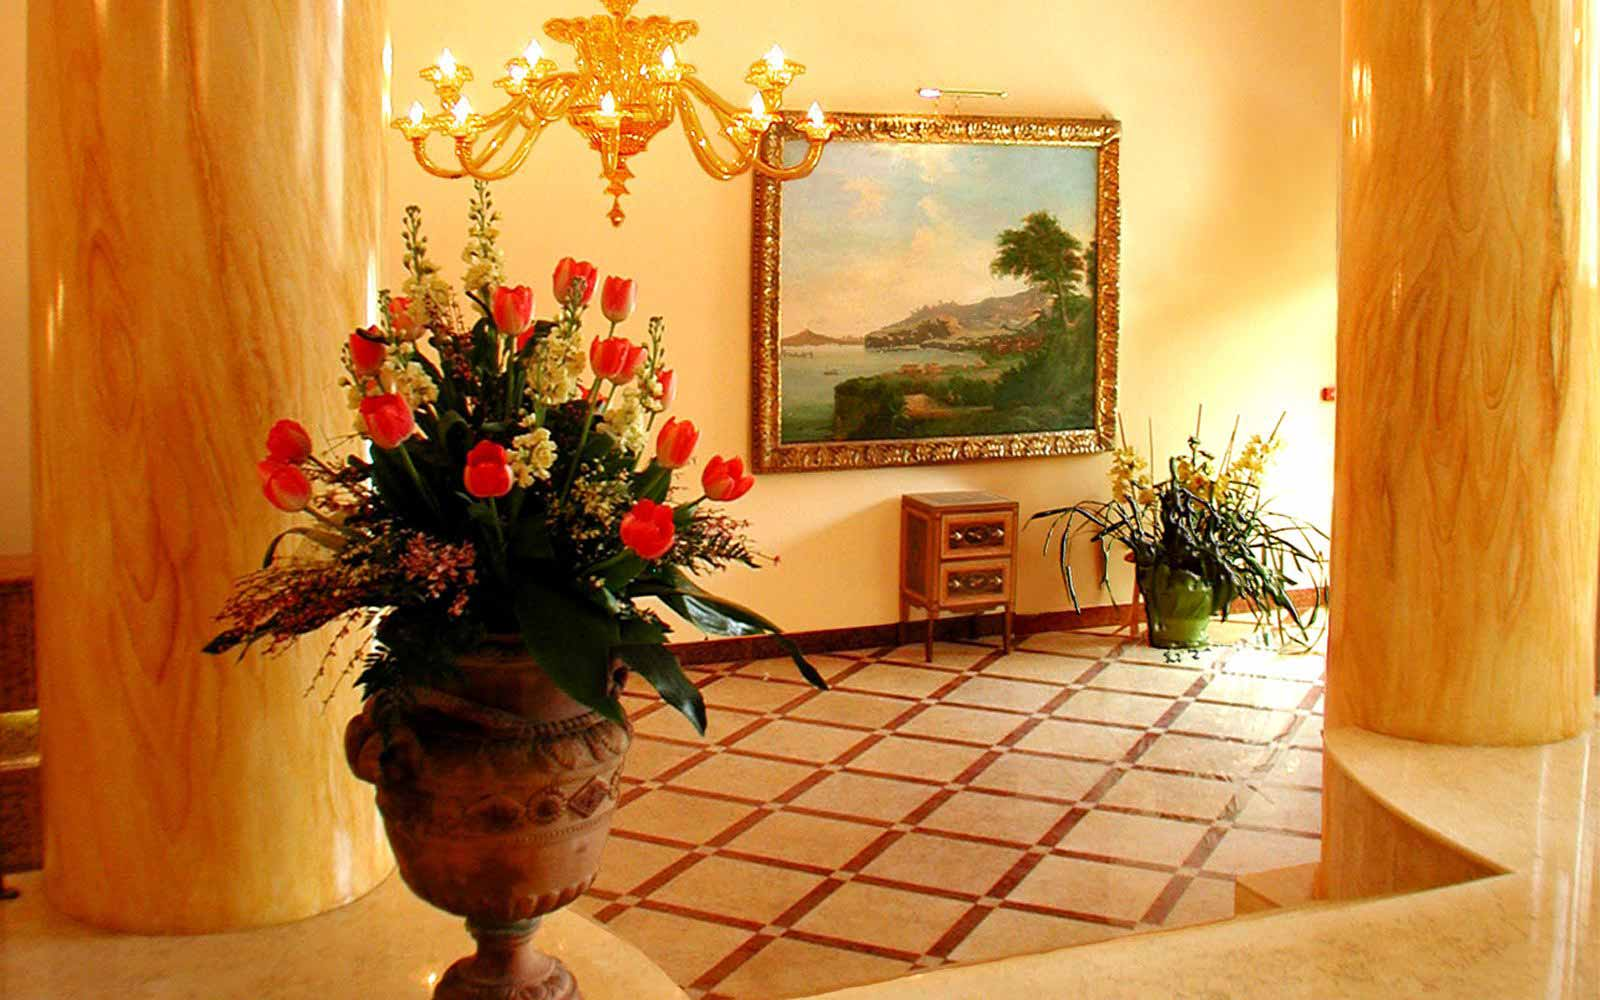 Reception hall at Hotel Antiche Mura